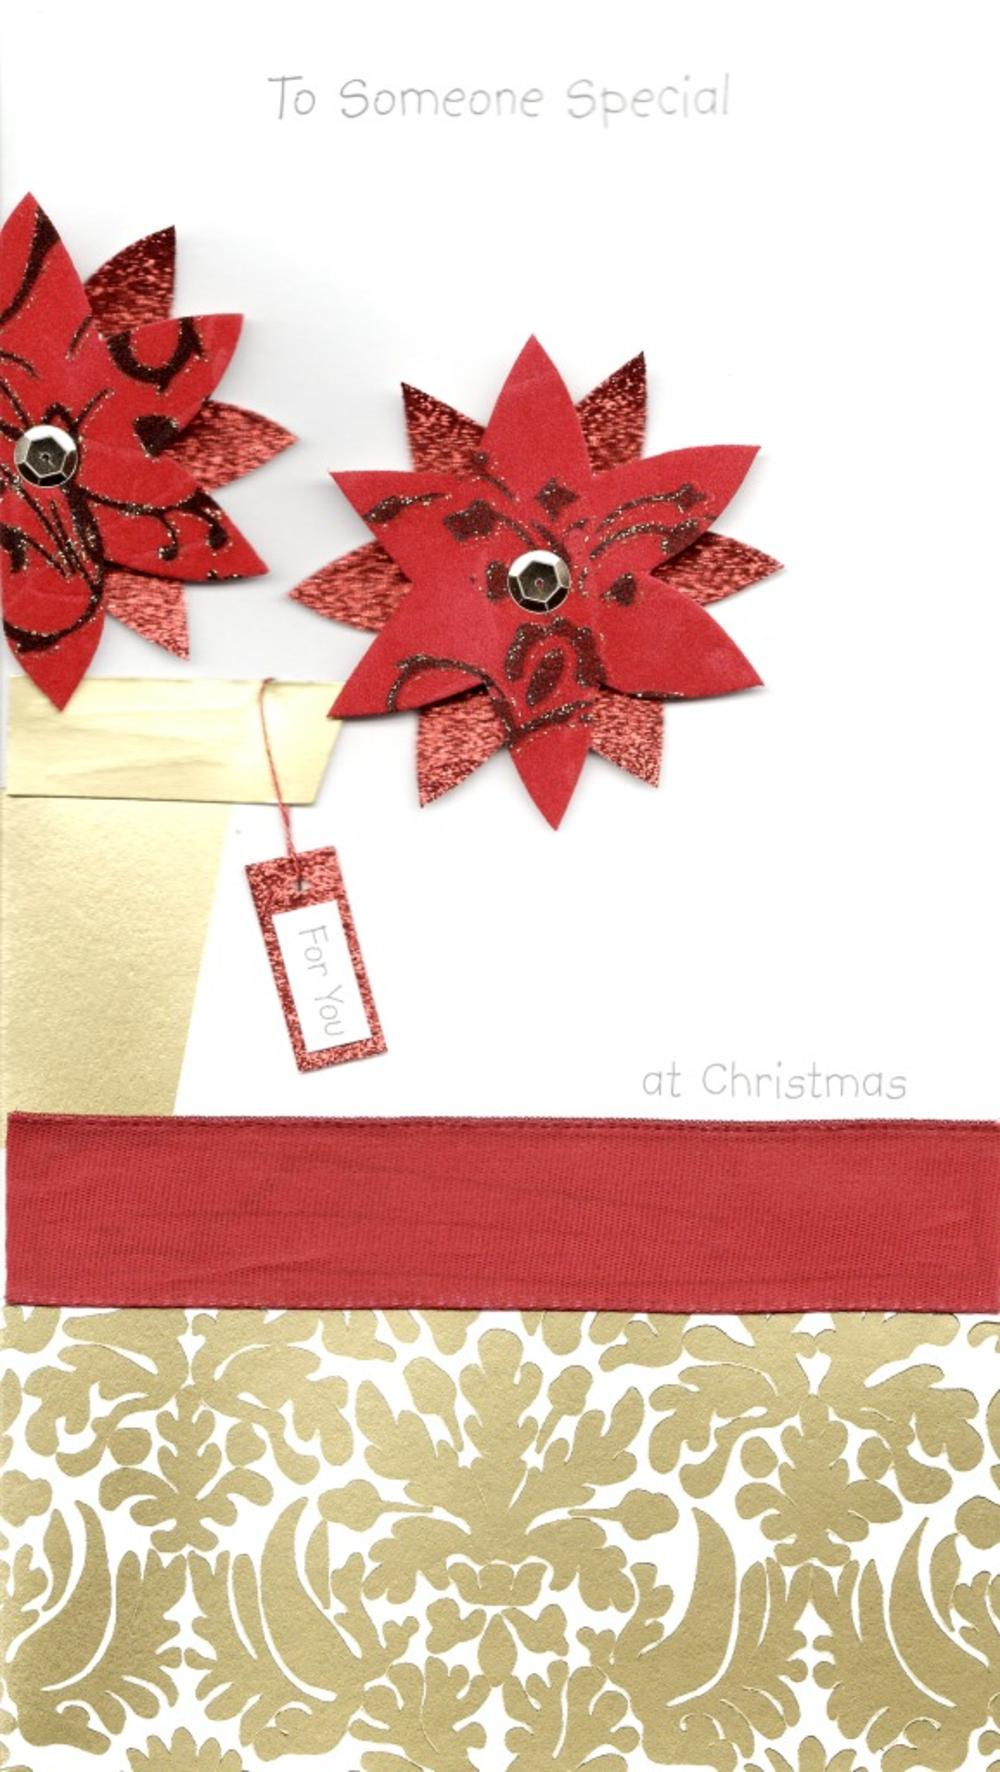 To Someone Special Luxury Handmade Christmas Card